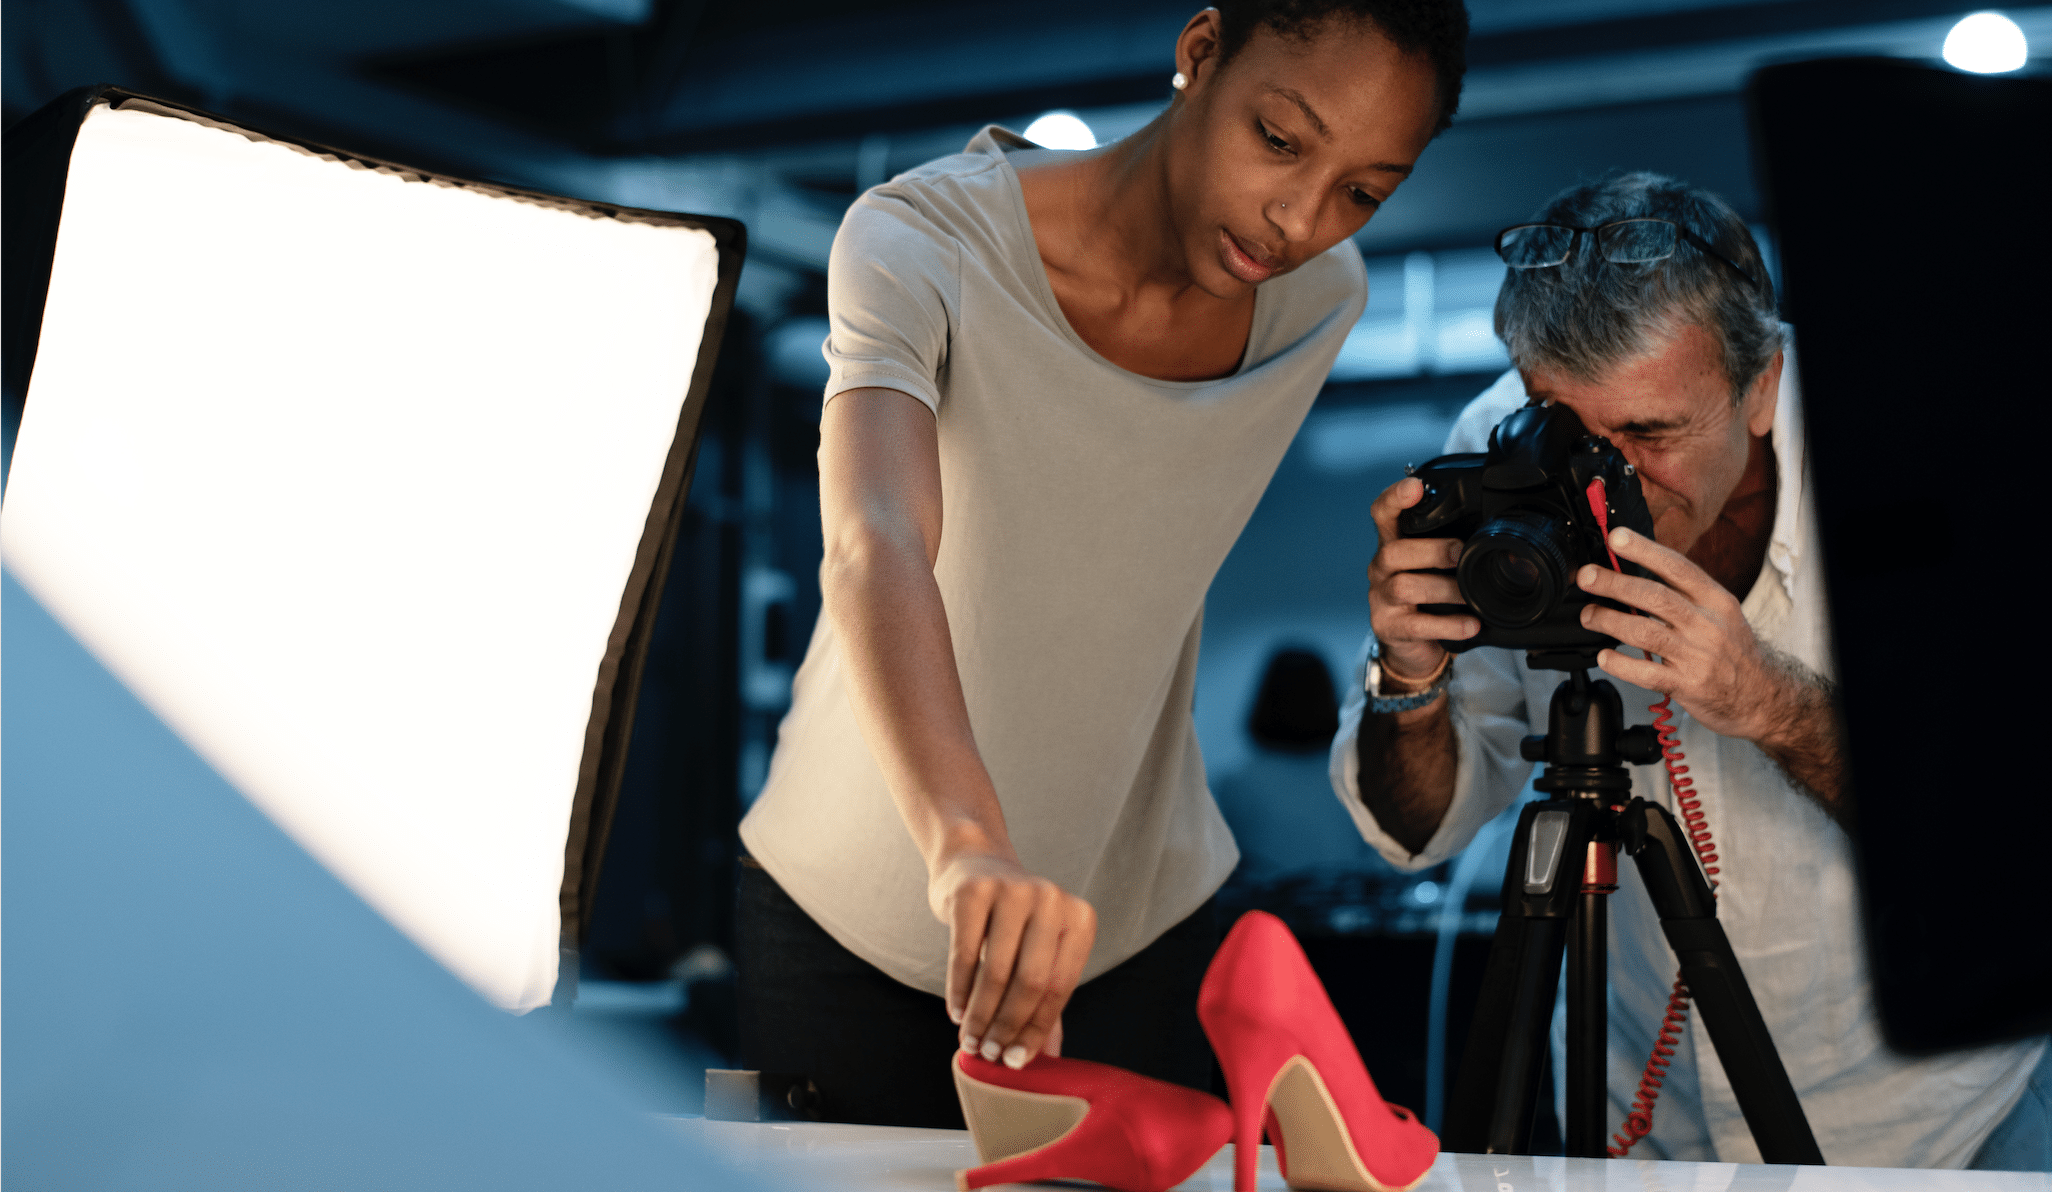 How To Take Product Photos Like A Pro